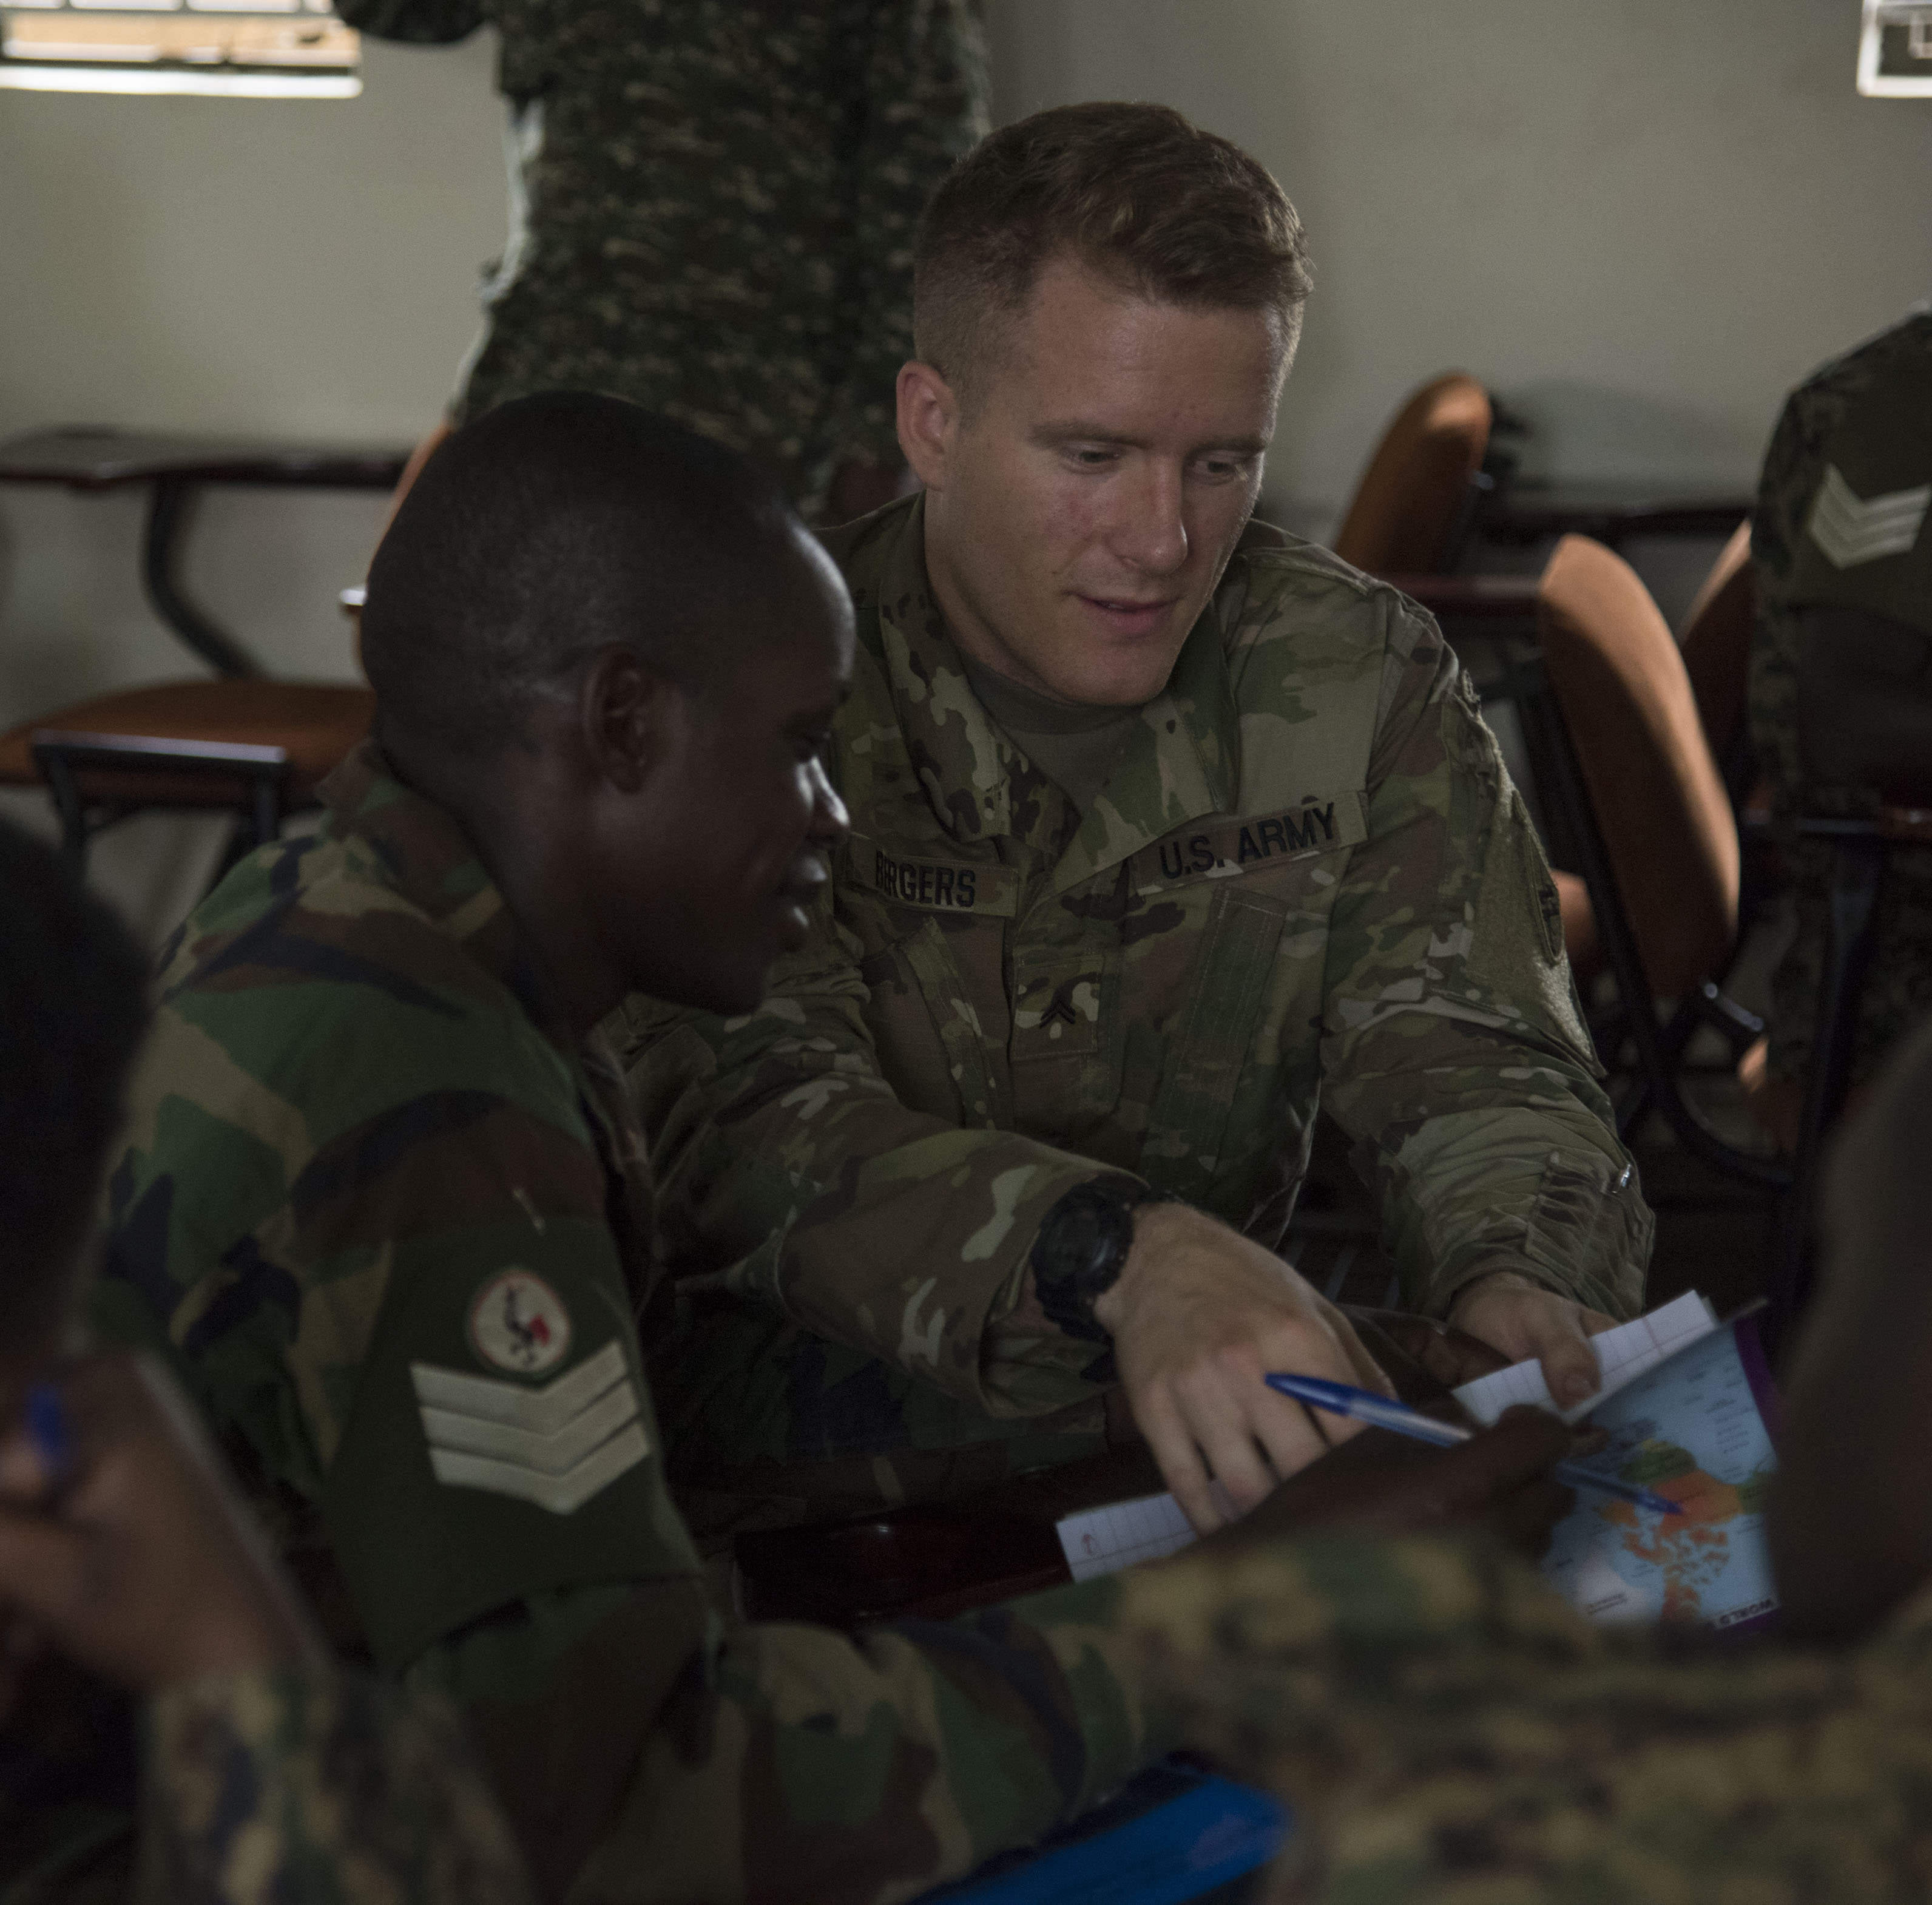 U.S. Army Corporal Shawn Bergers, assigned to the 407th Civil Affairs (CA) Battalion, attached to the Combined Joint Task Force - Horn of Africa, teaches a Civil-Military (CIMIC) course to soldiers from the Uganda People's Defence Force (UPDF) as part of a Civil Affairs Tactical Company Course held at Camp Singo, Uganda, Feb. 08, 2018.  CJTF-HOA service members are forward deployed to Camp Singo to advise and assist the UPDF in preparing Ugandan Battle Group 25 for an upcoming deployment in support of the African Union Mission in Somalia (AMISOM). (U.S. Air National Guard photo by Staff Sgt. Allyson L. Manners)